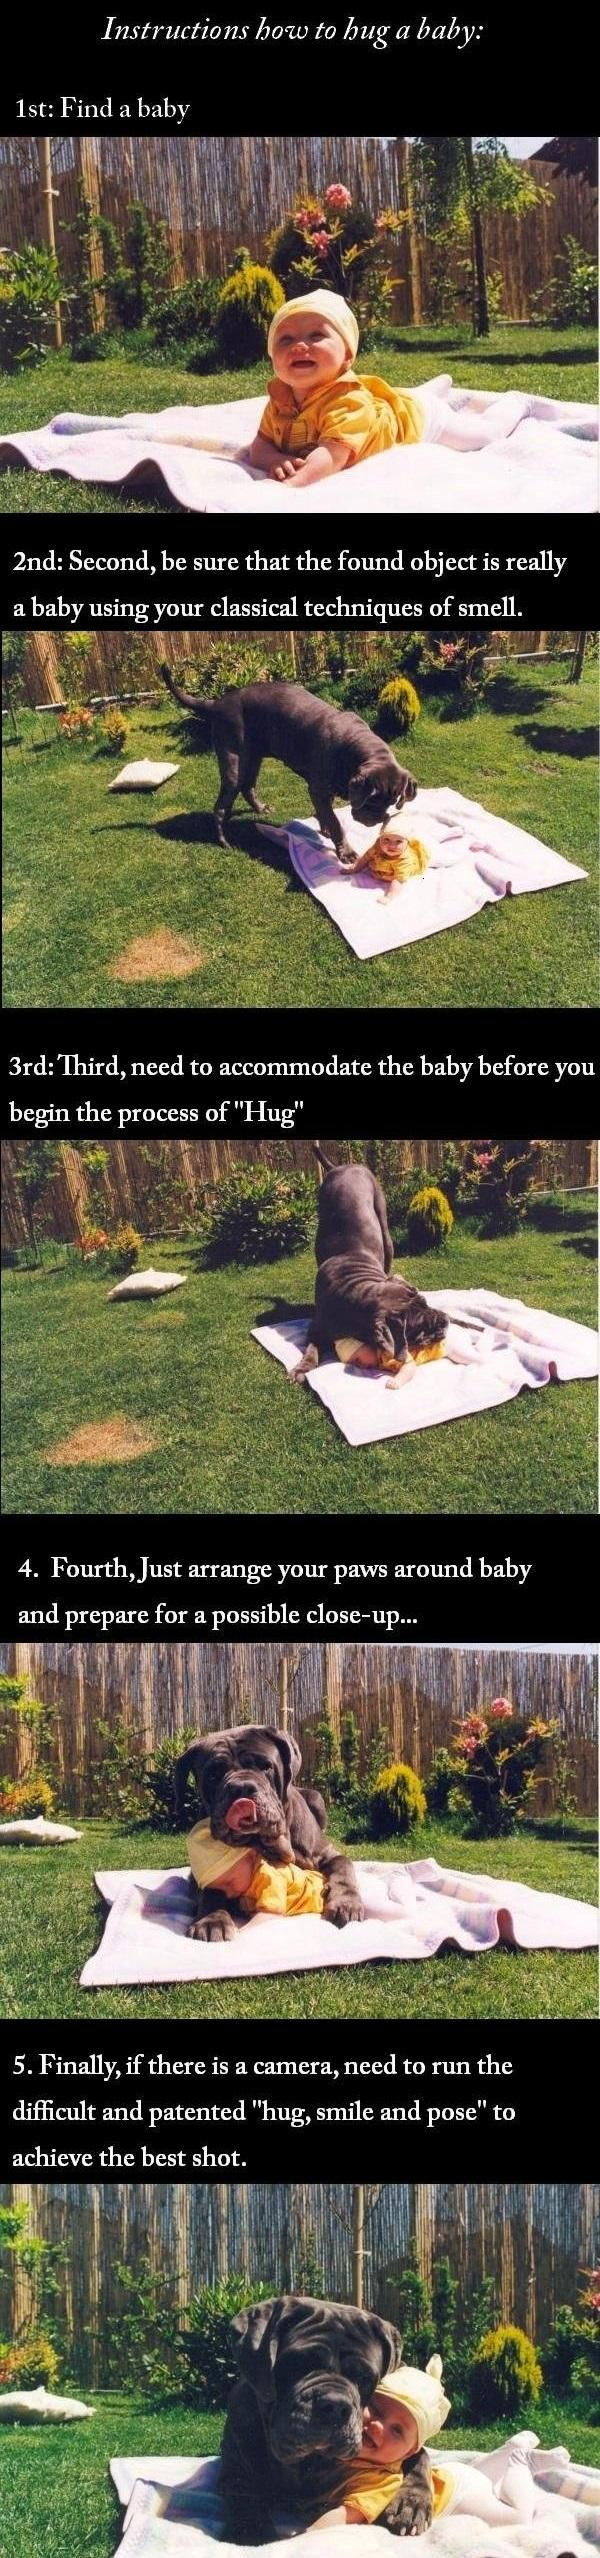 Instructions How To Hug A Baby